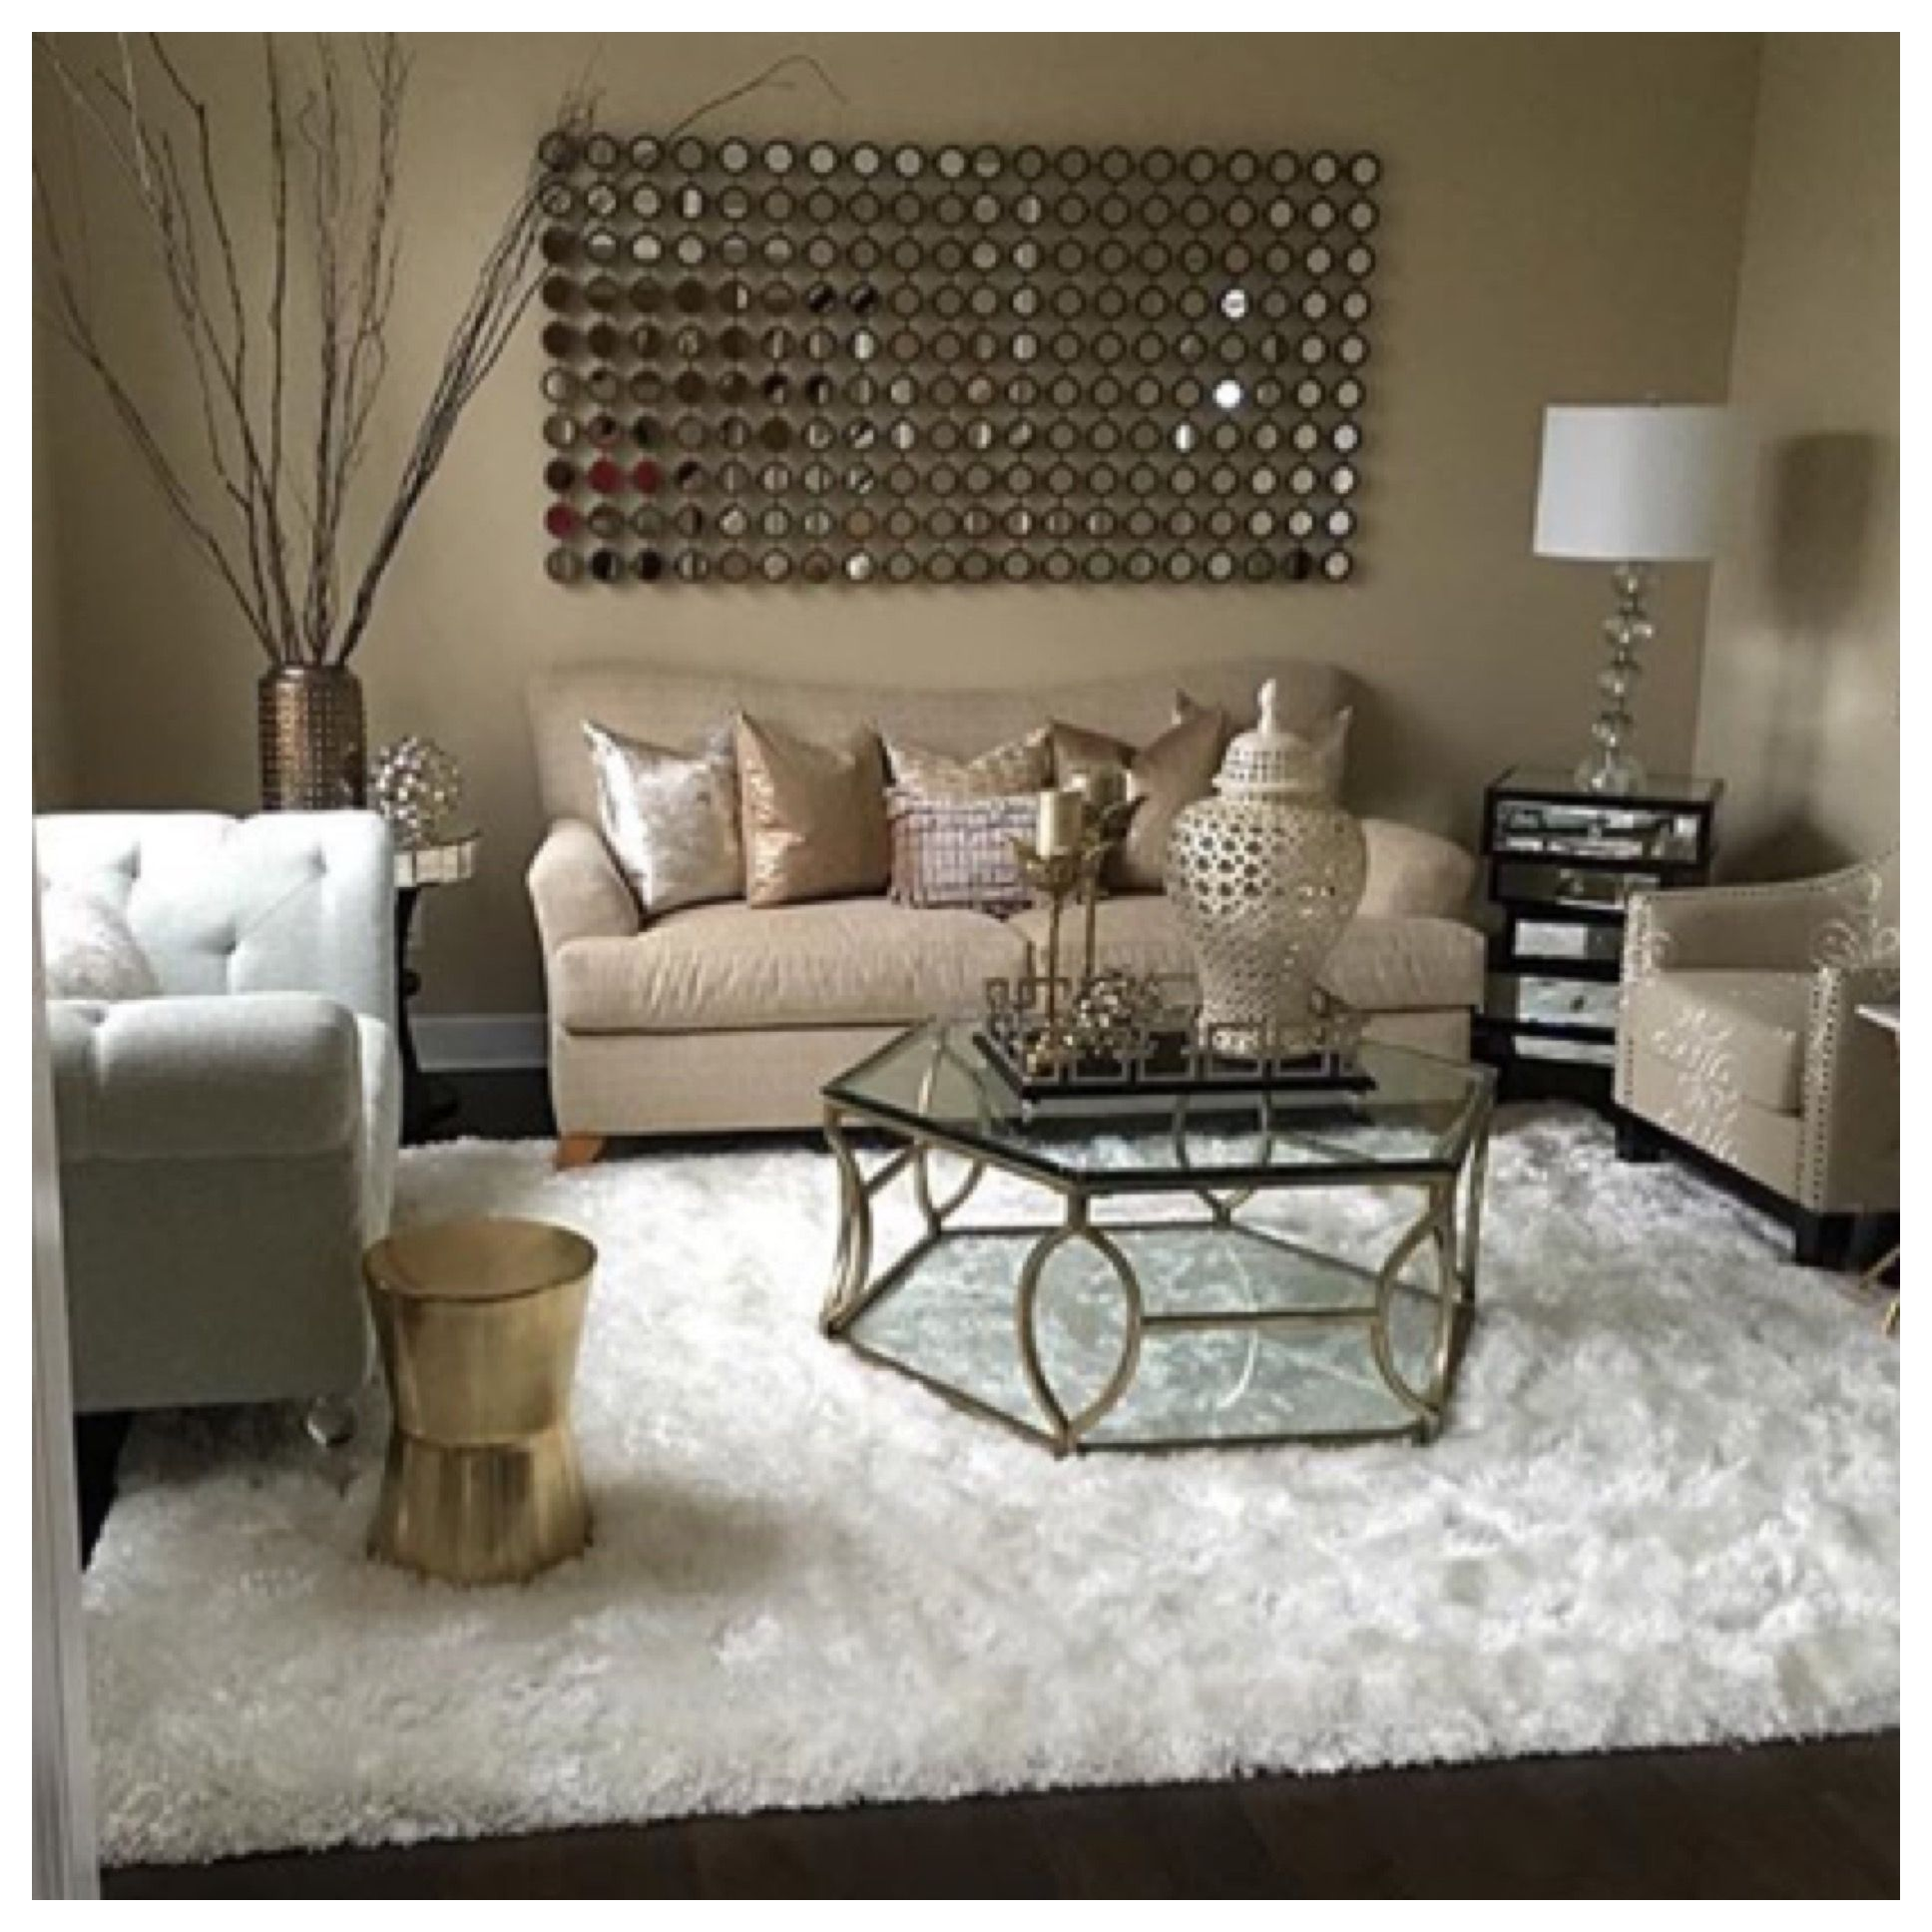 Decorative mirrors for dining room pin by mysteria martinez on home sweet home  pinterest  living